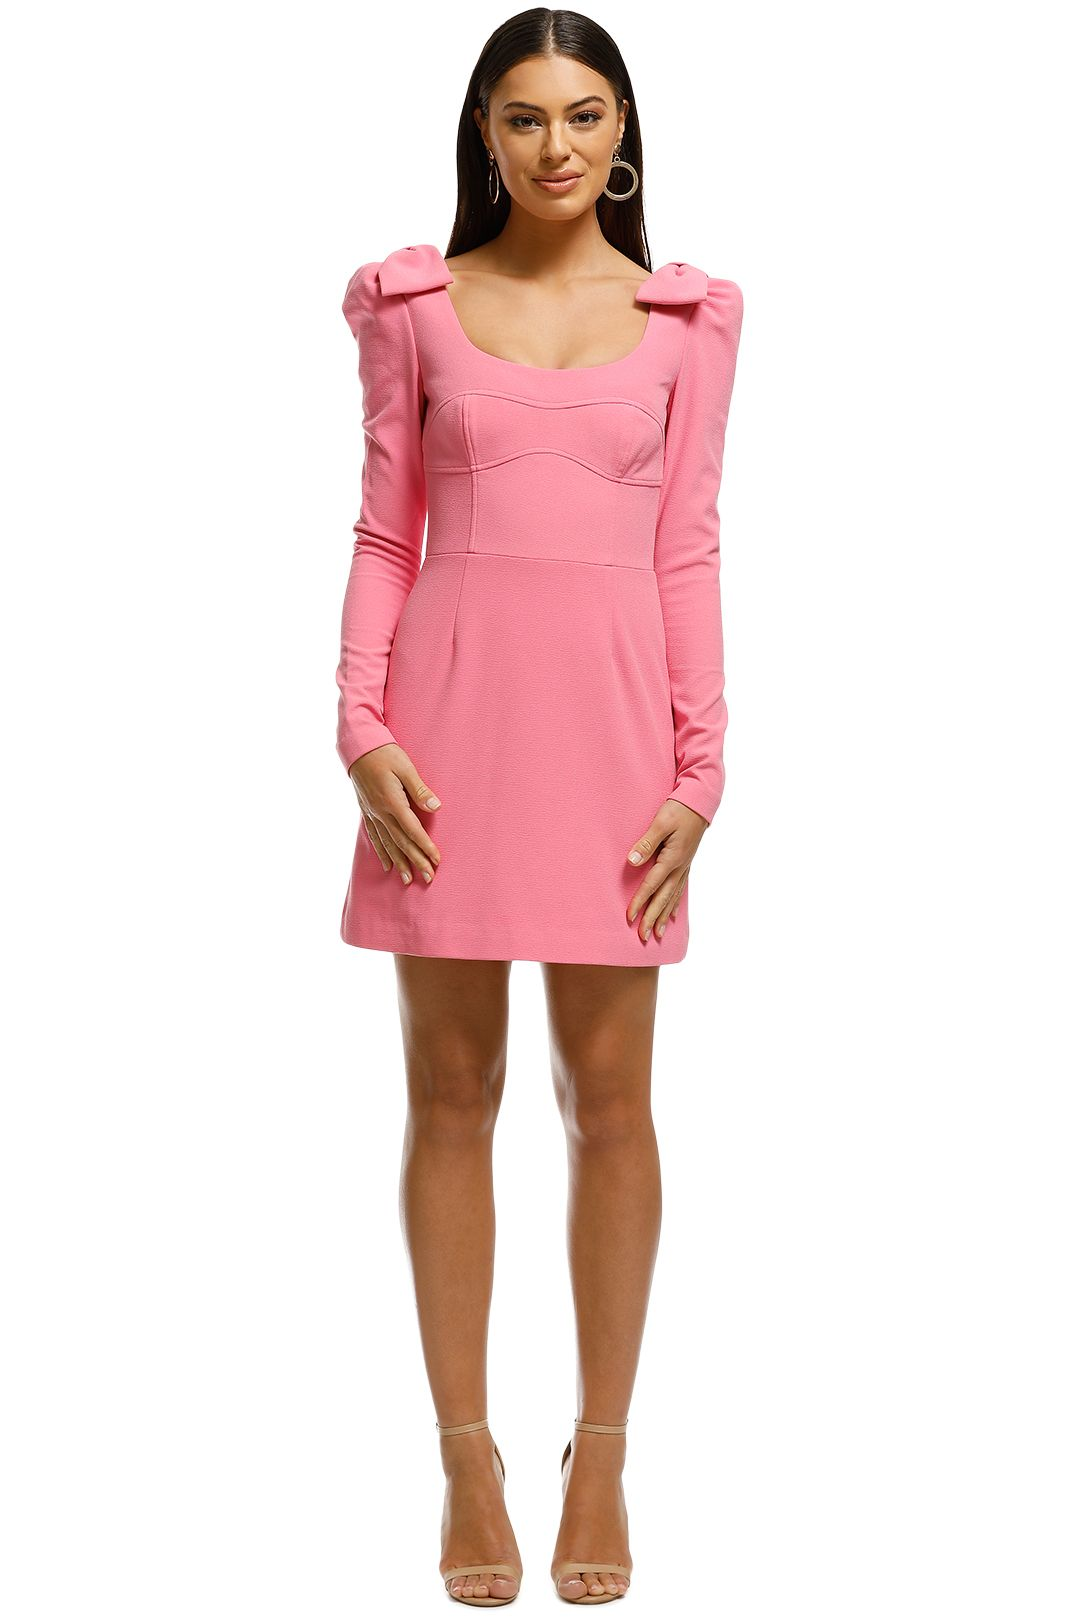 Rebecca Vallance - Love Mini Dress - Pink - Front